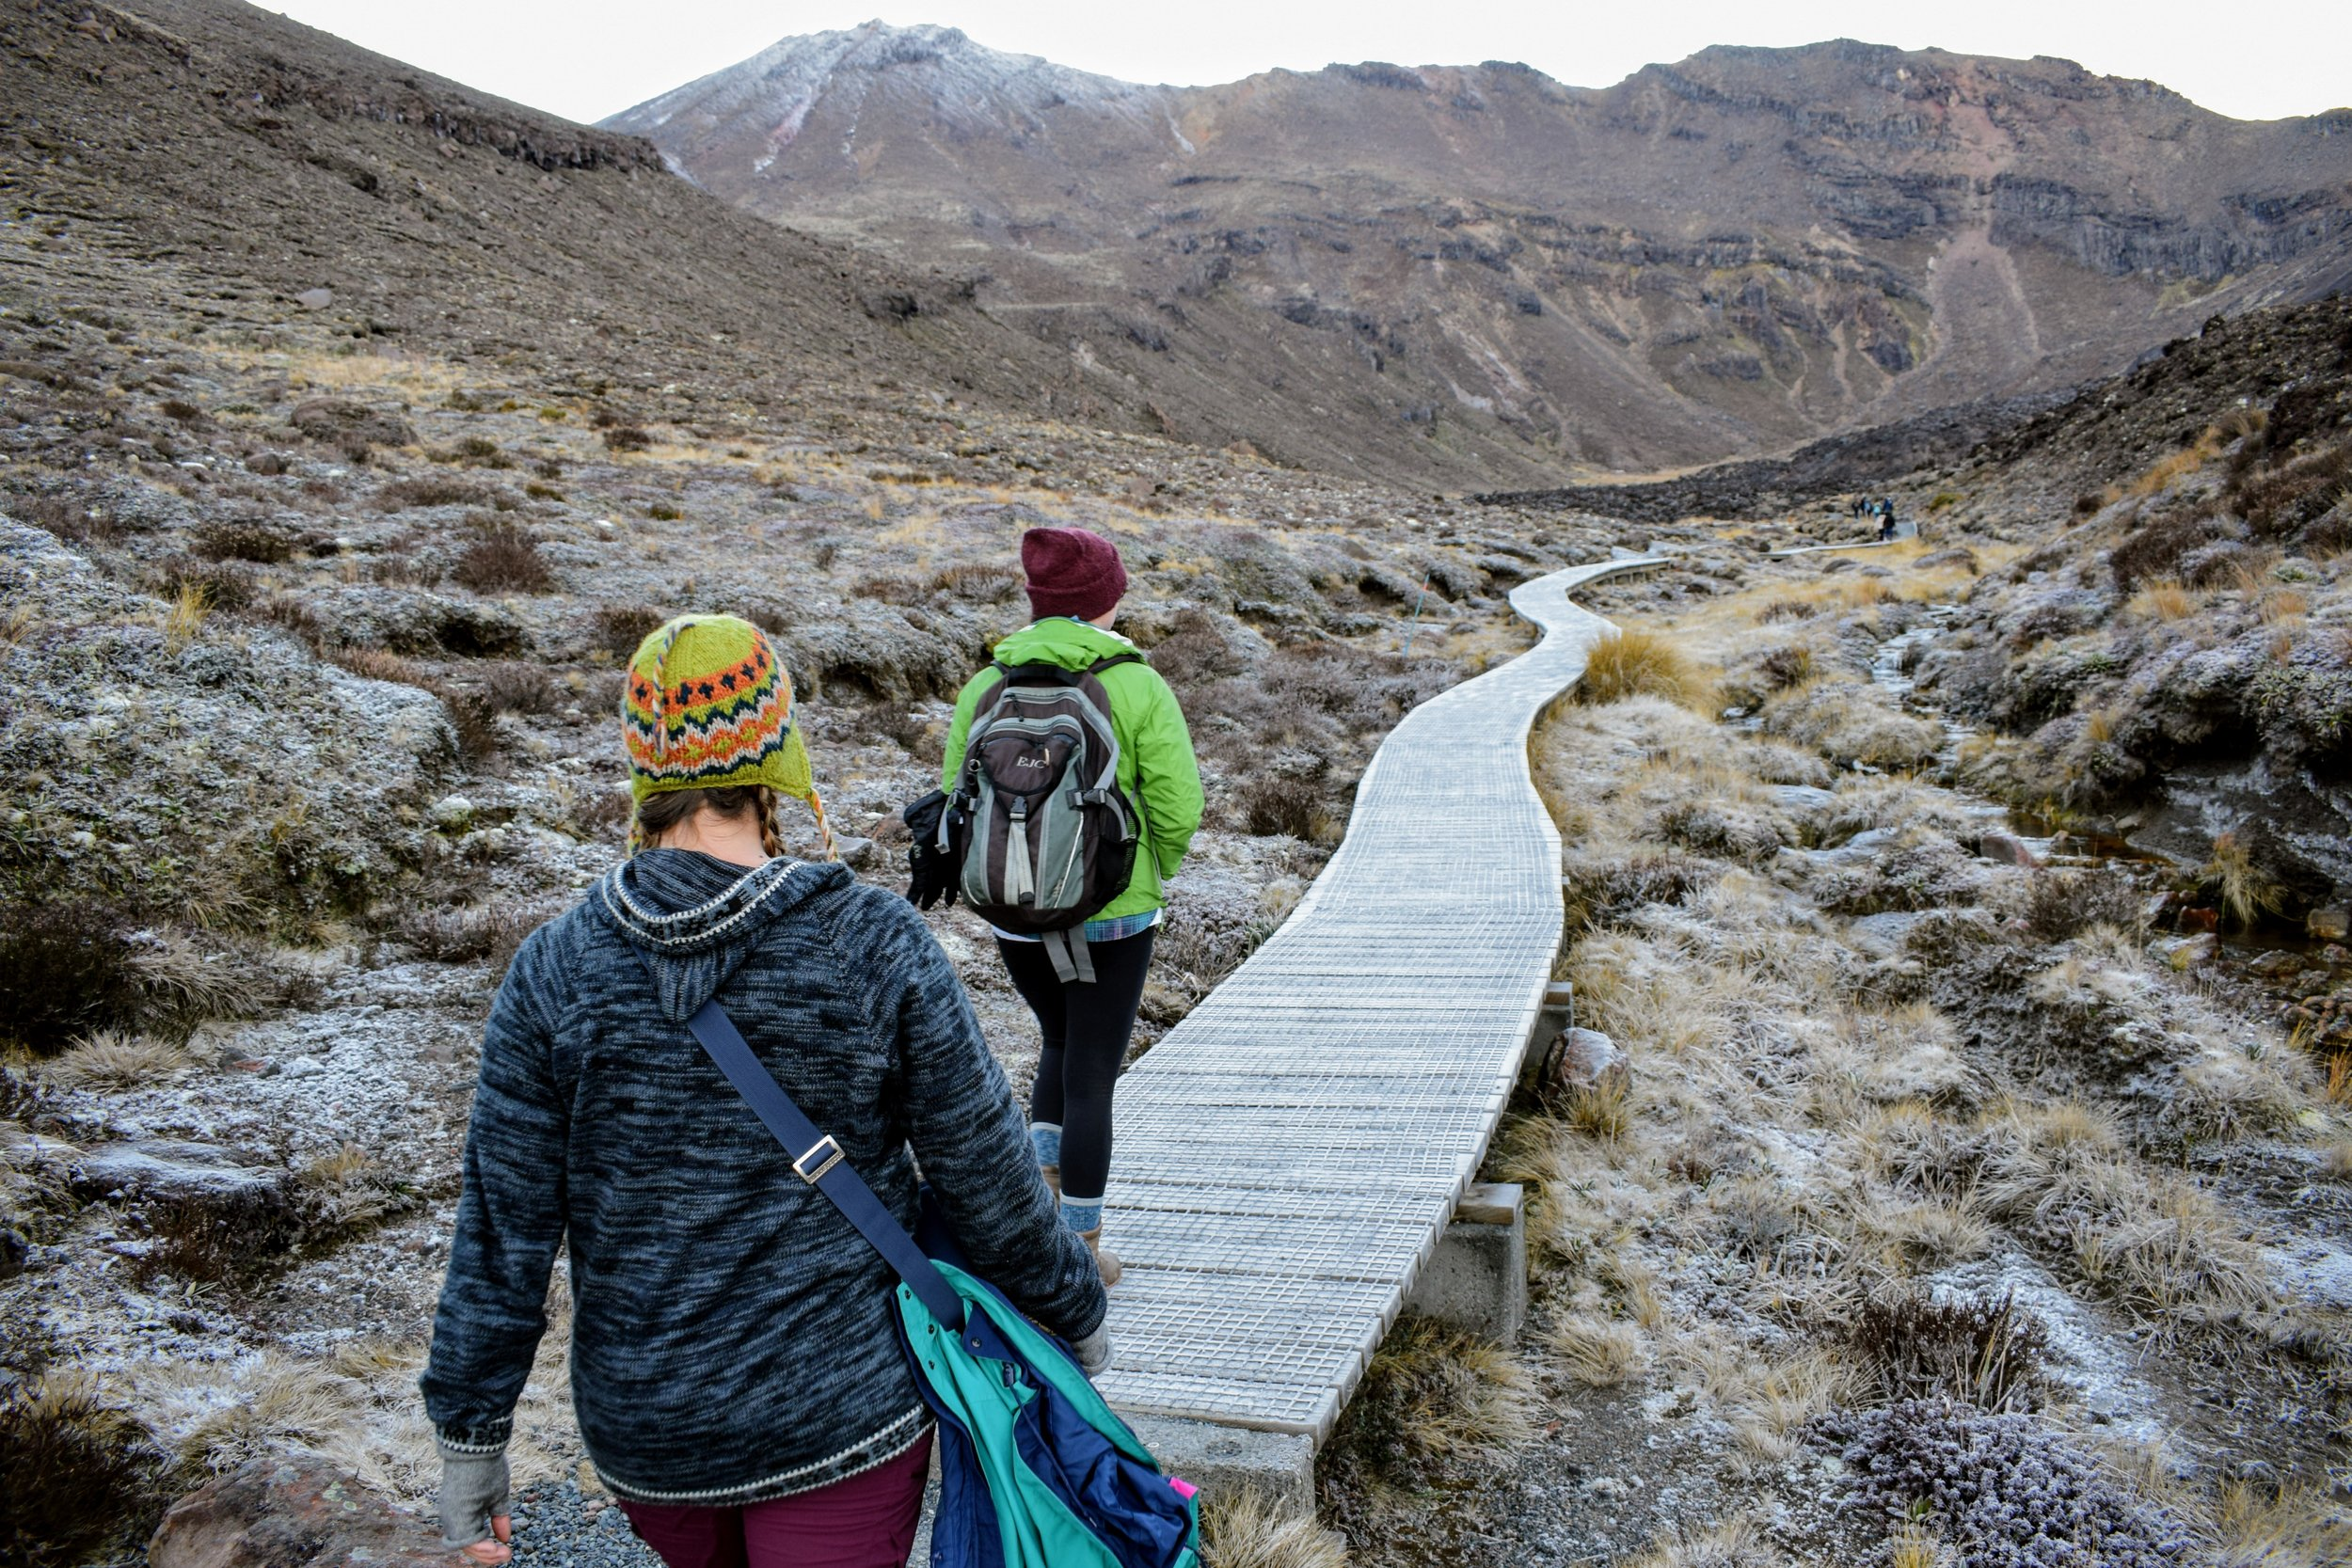 The short boardwalk on the track before the approach to Soda Springs is deceptive: the track only increases greatly in difficulty from then onwards.